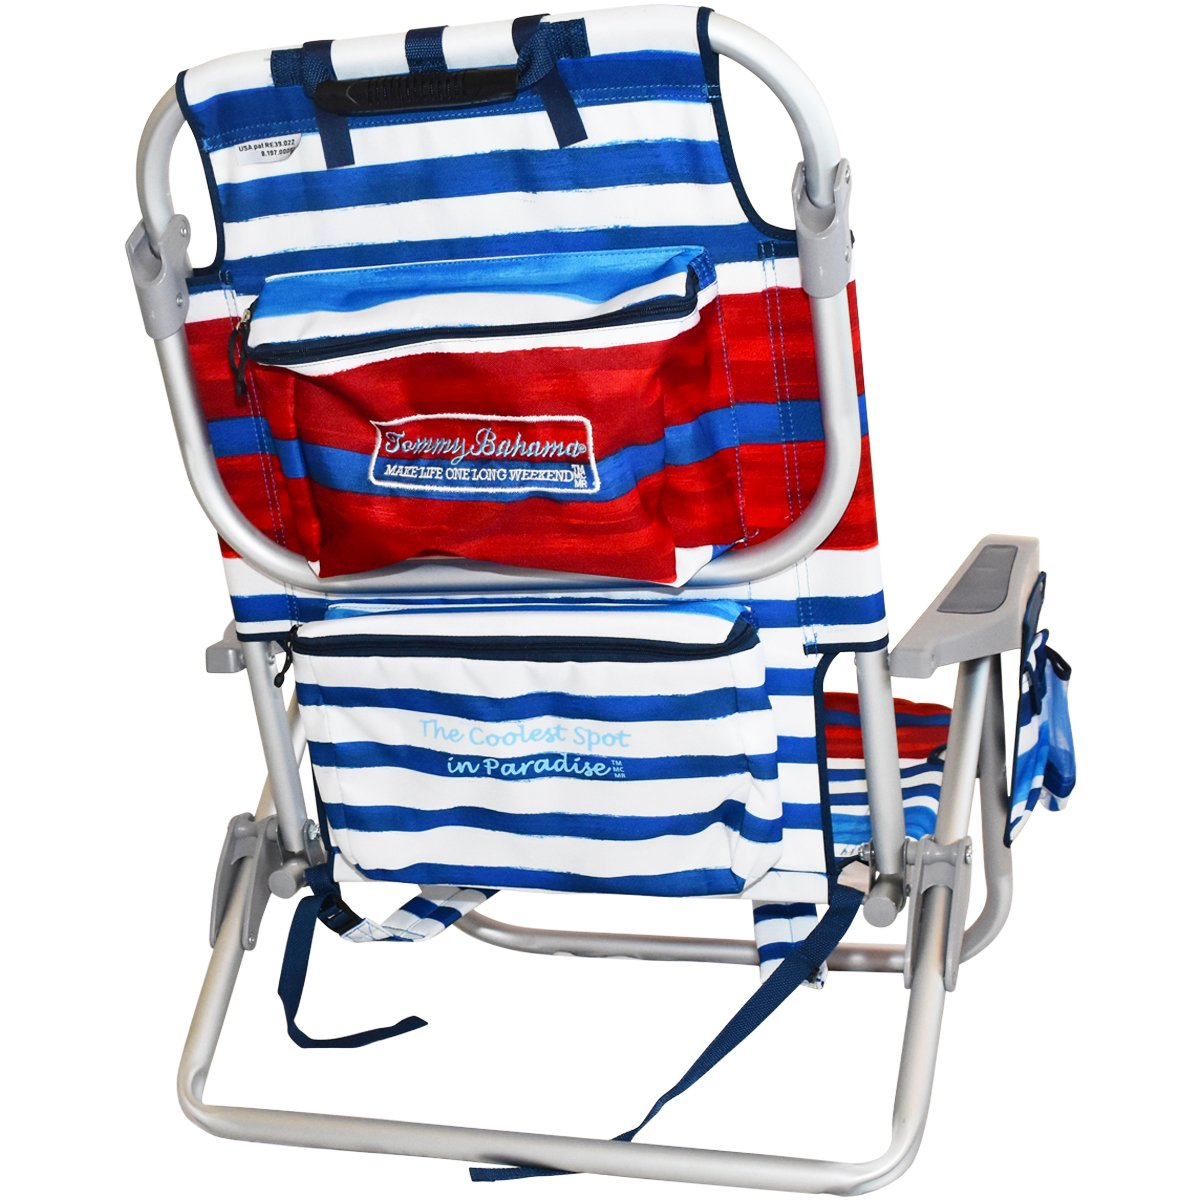 Prime 2 Tommy Bahama Backpack Cooler Chair With Storage Pouch And Towel Bar Red White Blue Red White Blue Pdpeps Interior Chair Design Pdpepsorg